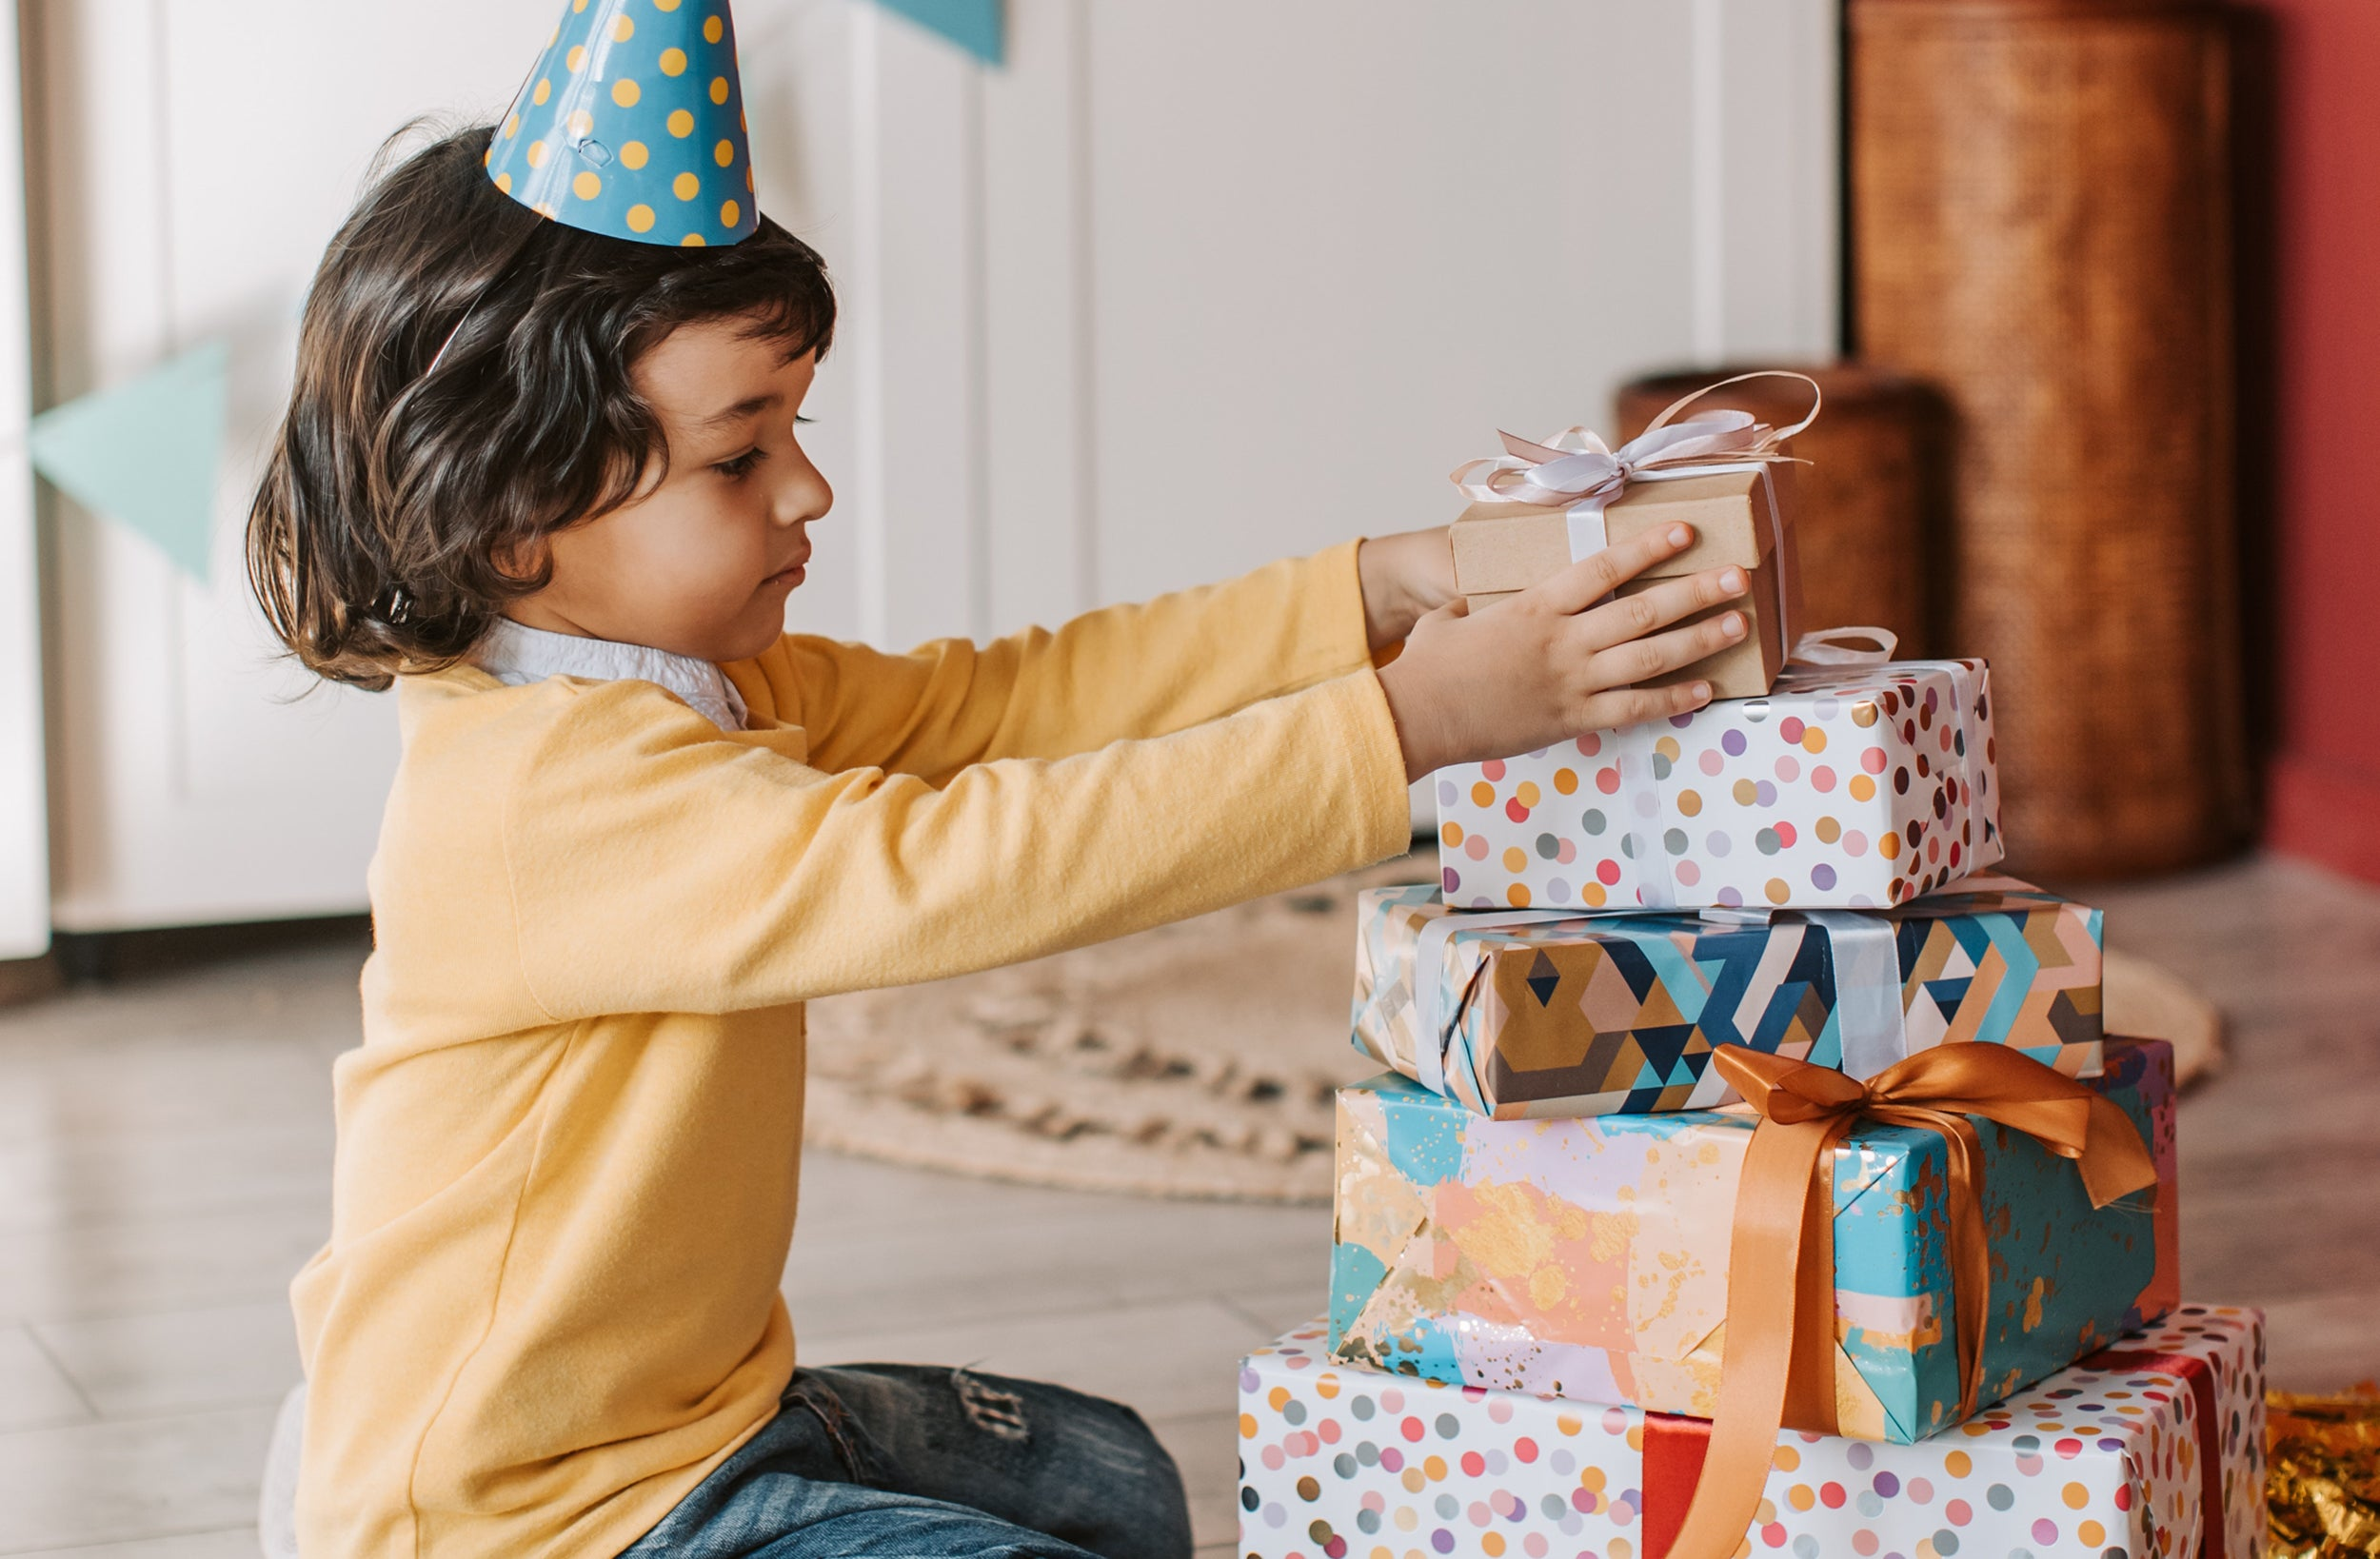 Boy with pile of presents